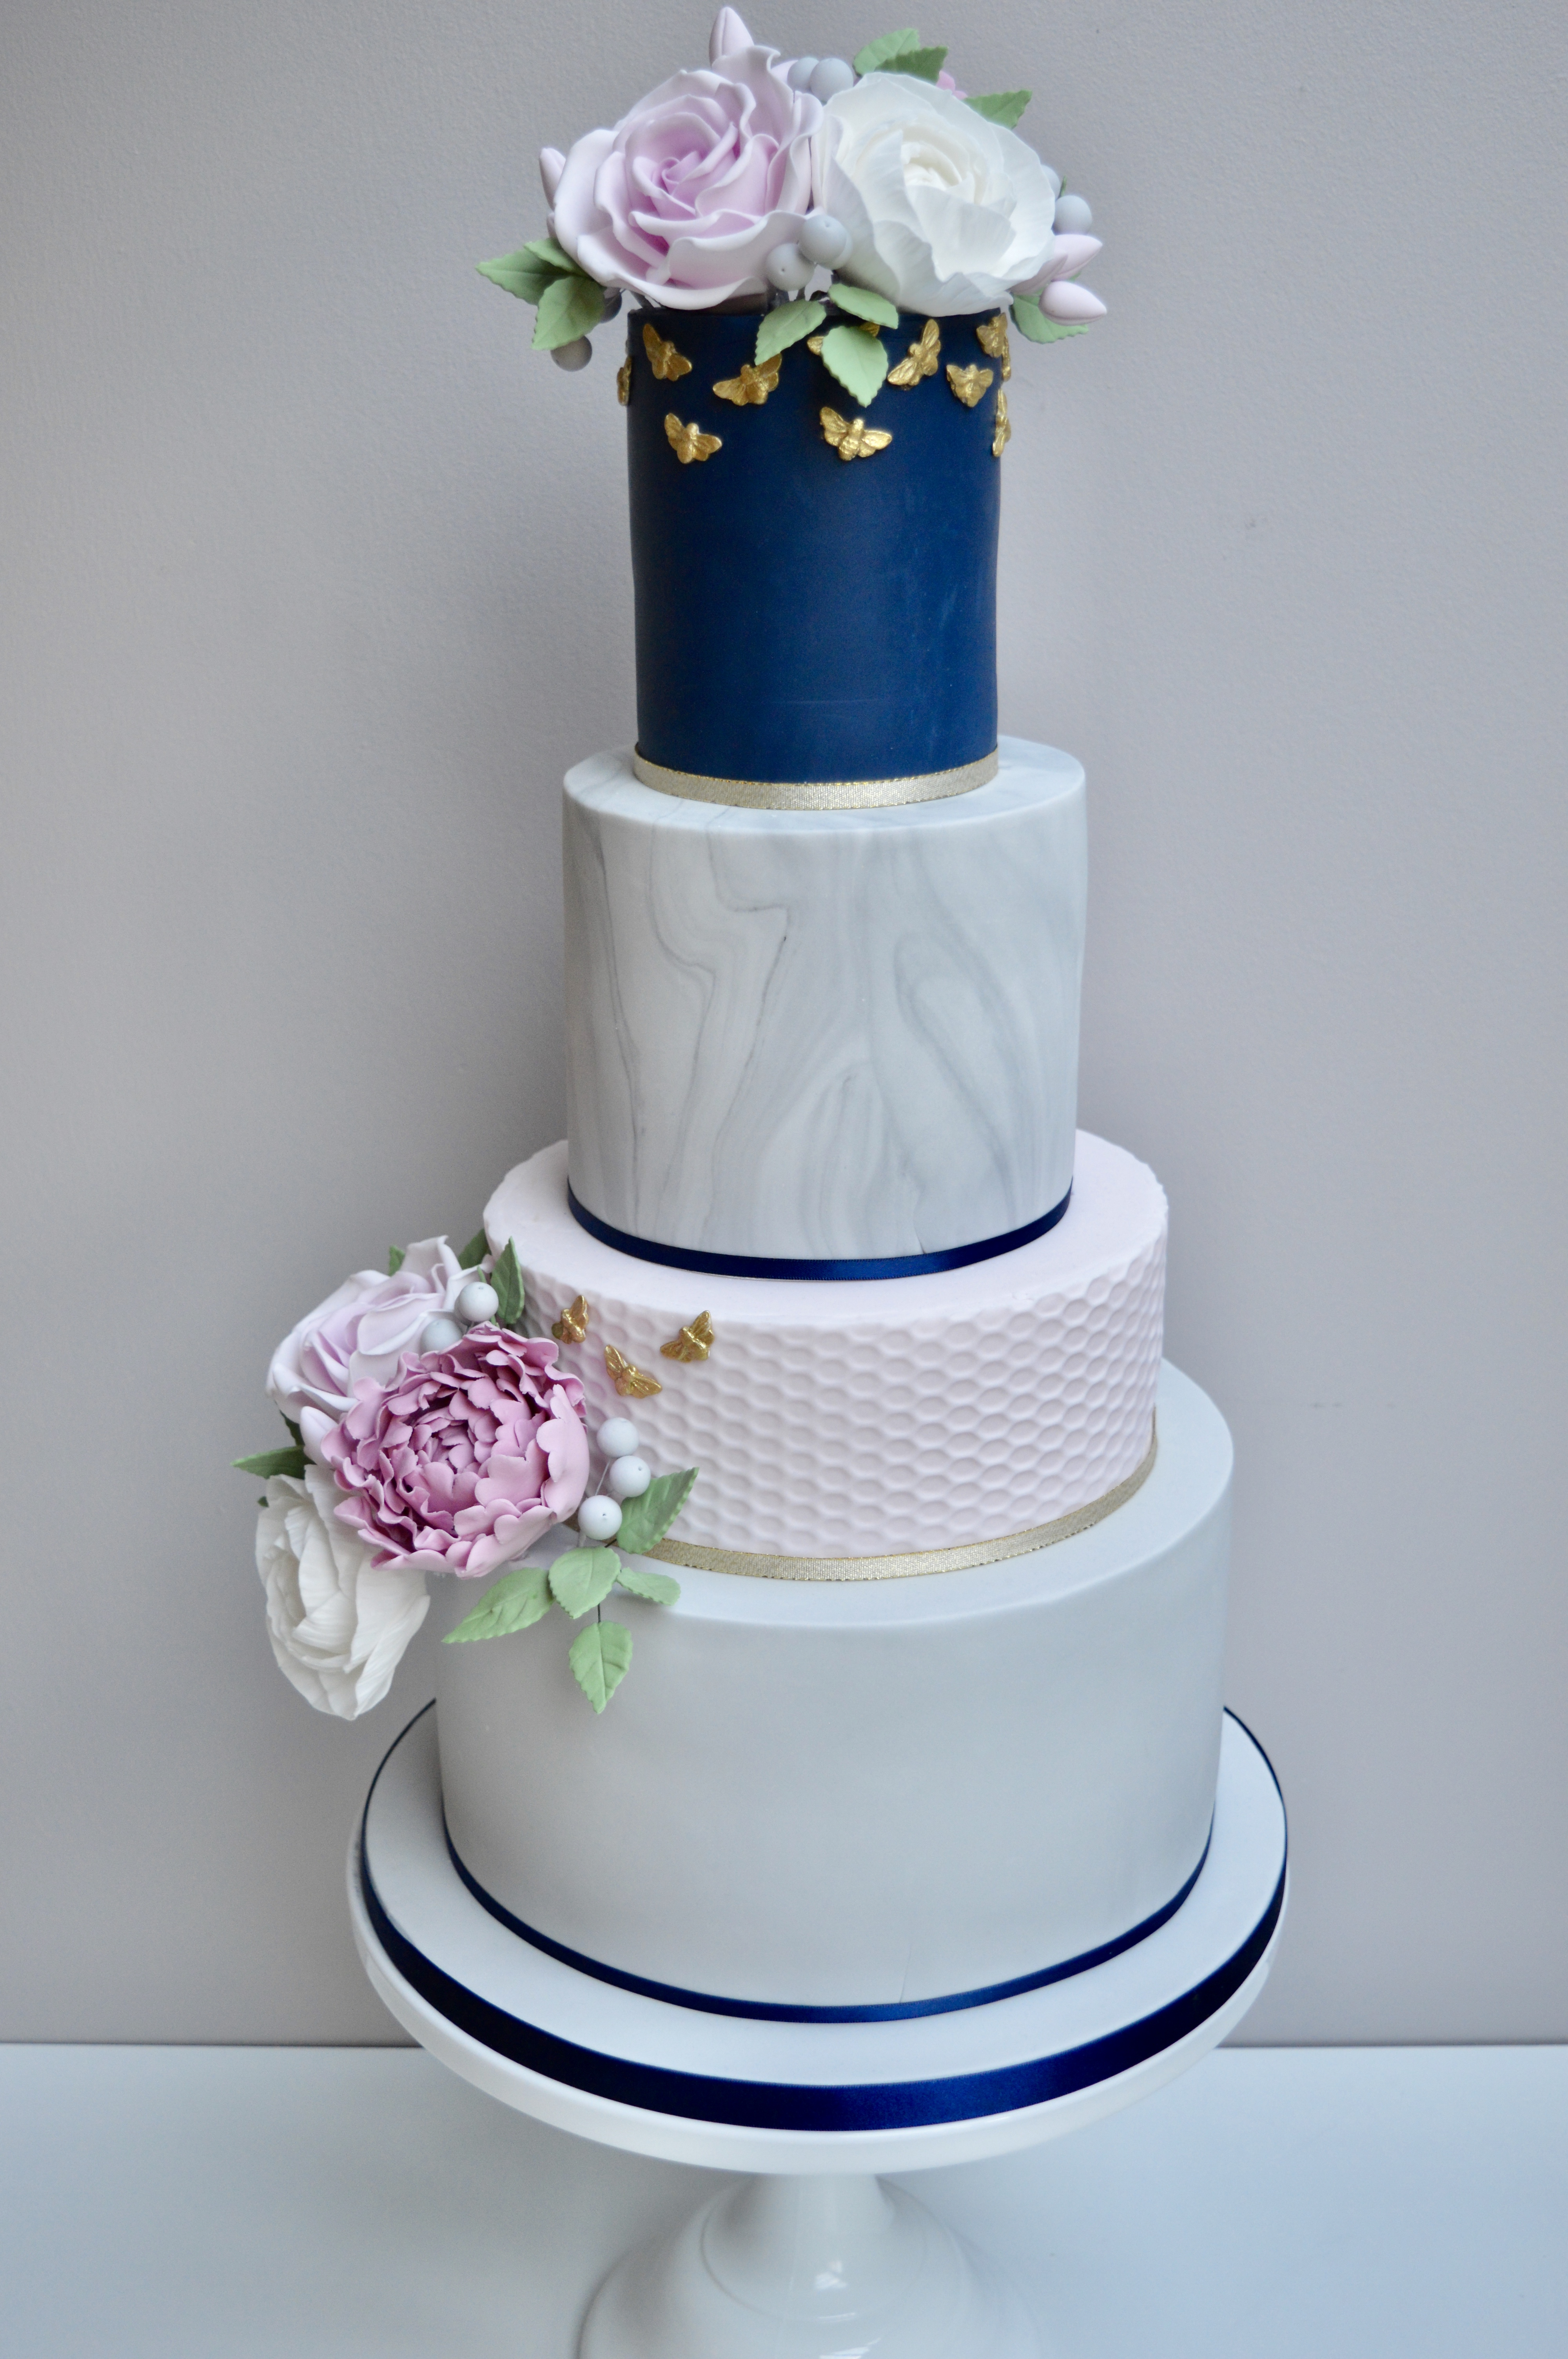 Wonderful 4 tier wedding cake with roses and peonies